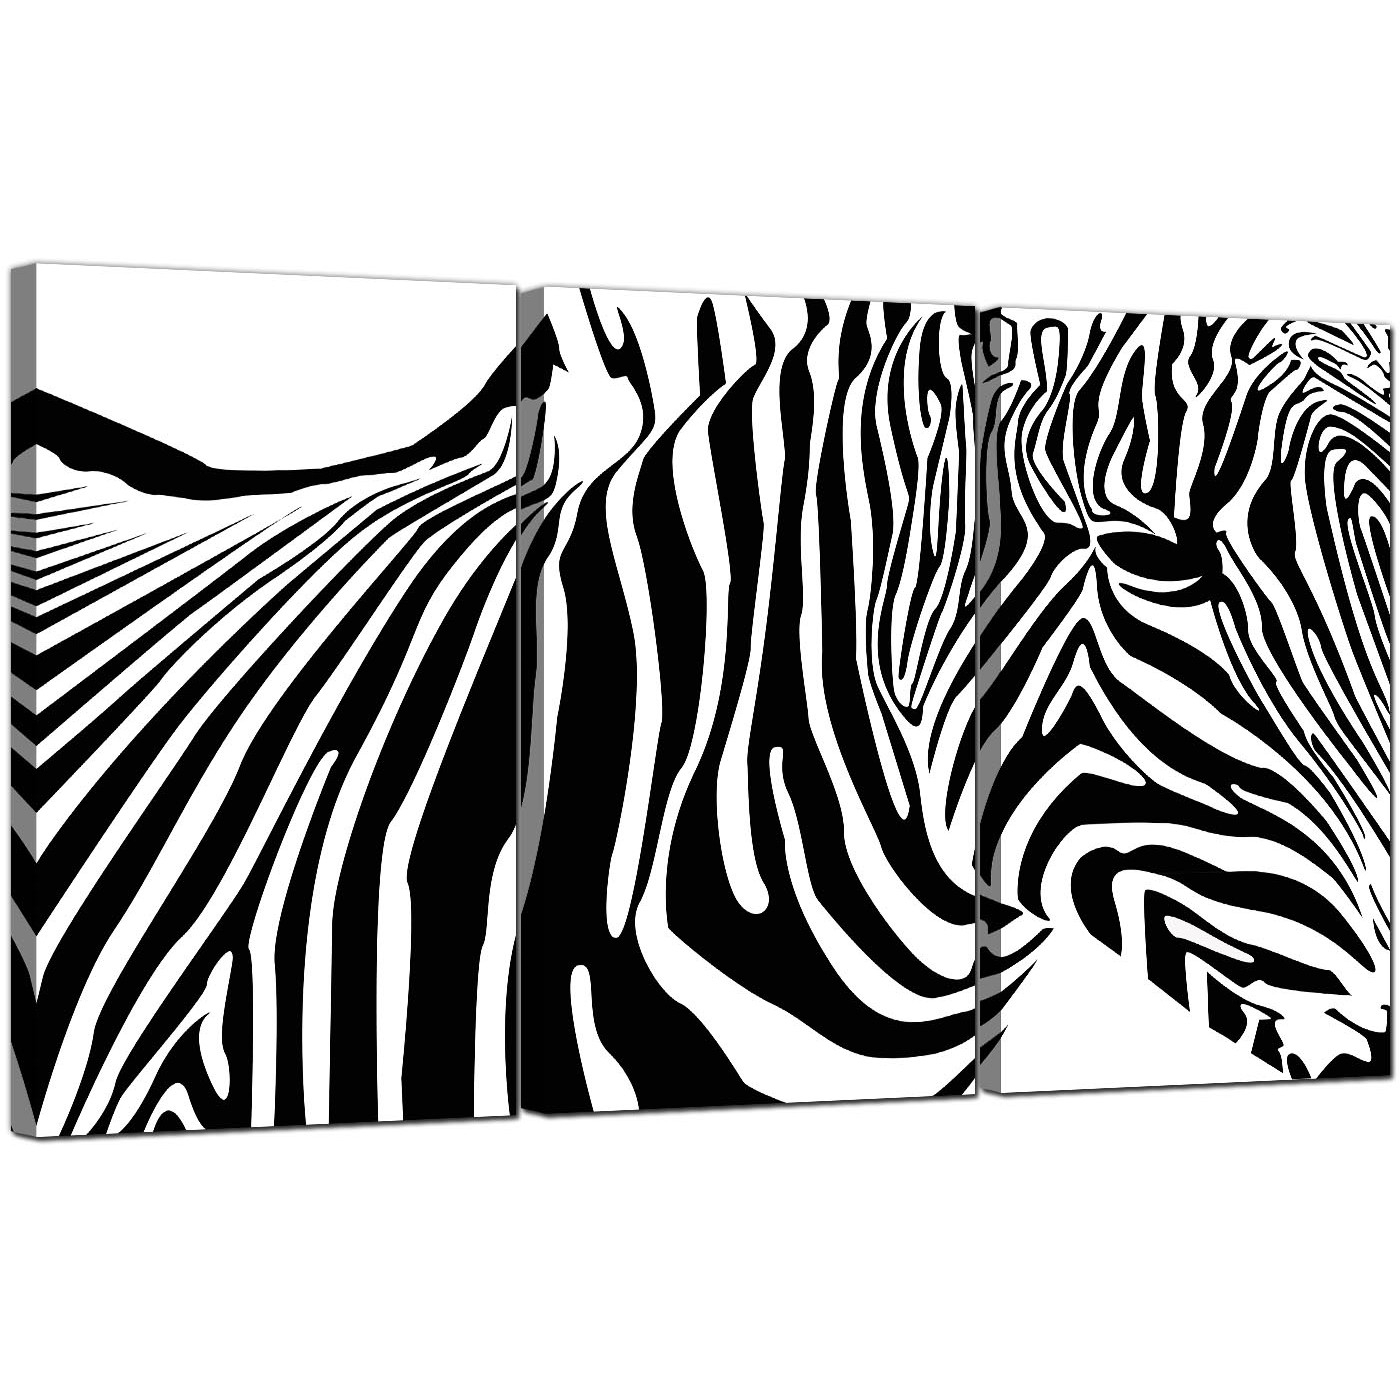 Zebra Canvas Pictures 3 Panel For Your Dining Room Inside Most Popular Zebra Canvas Wall Art (View 16 of 20)